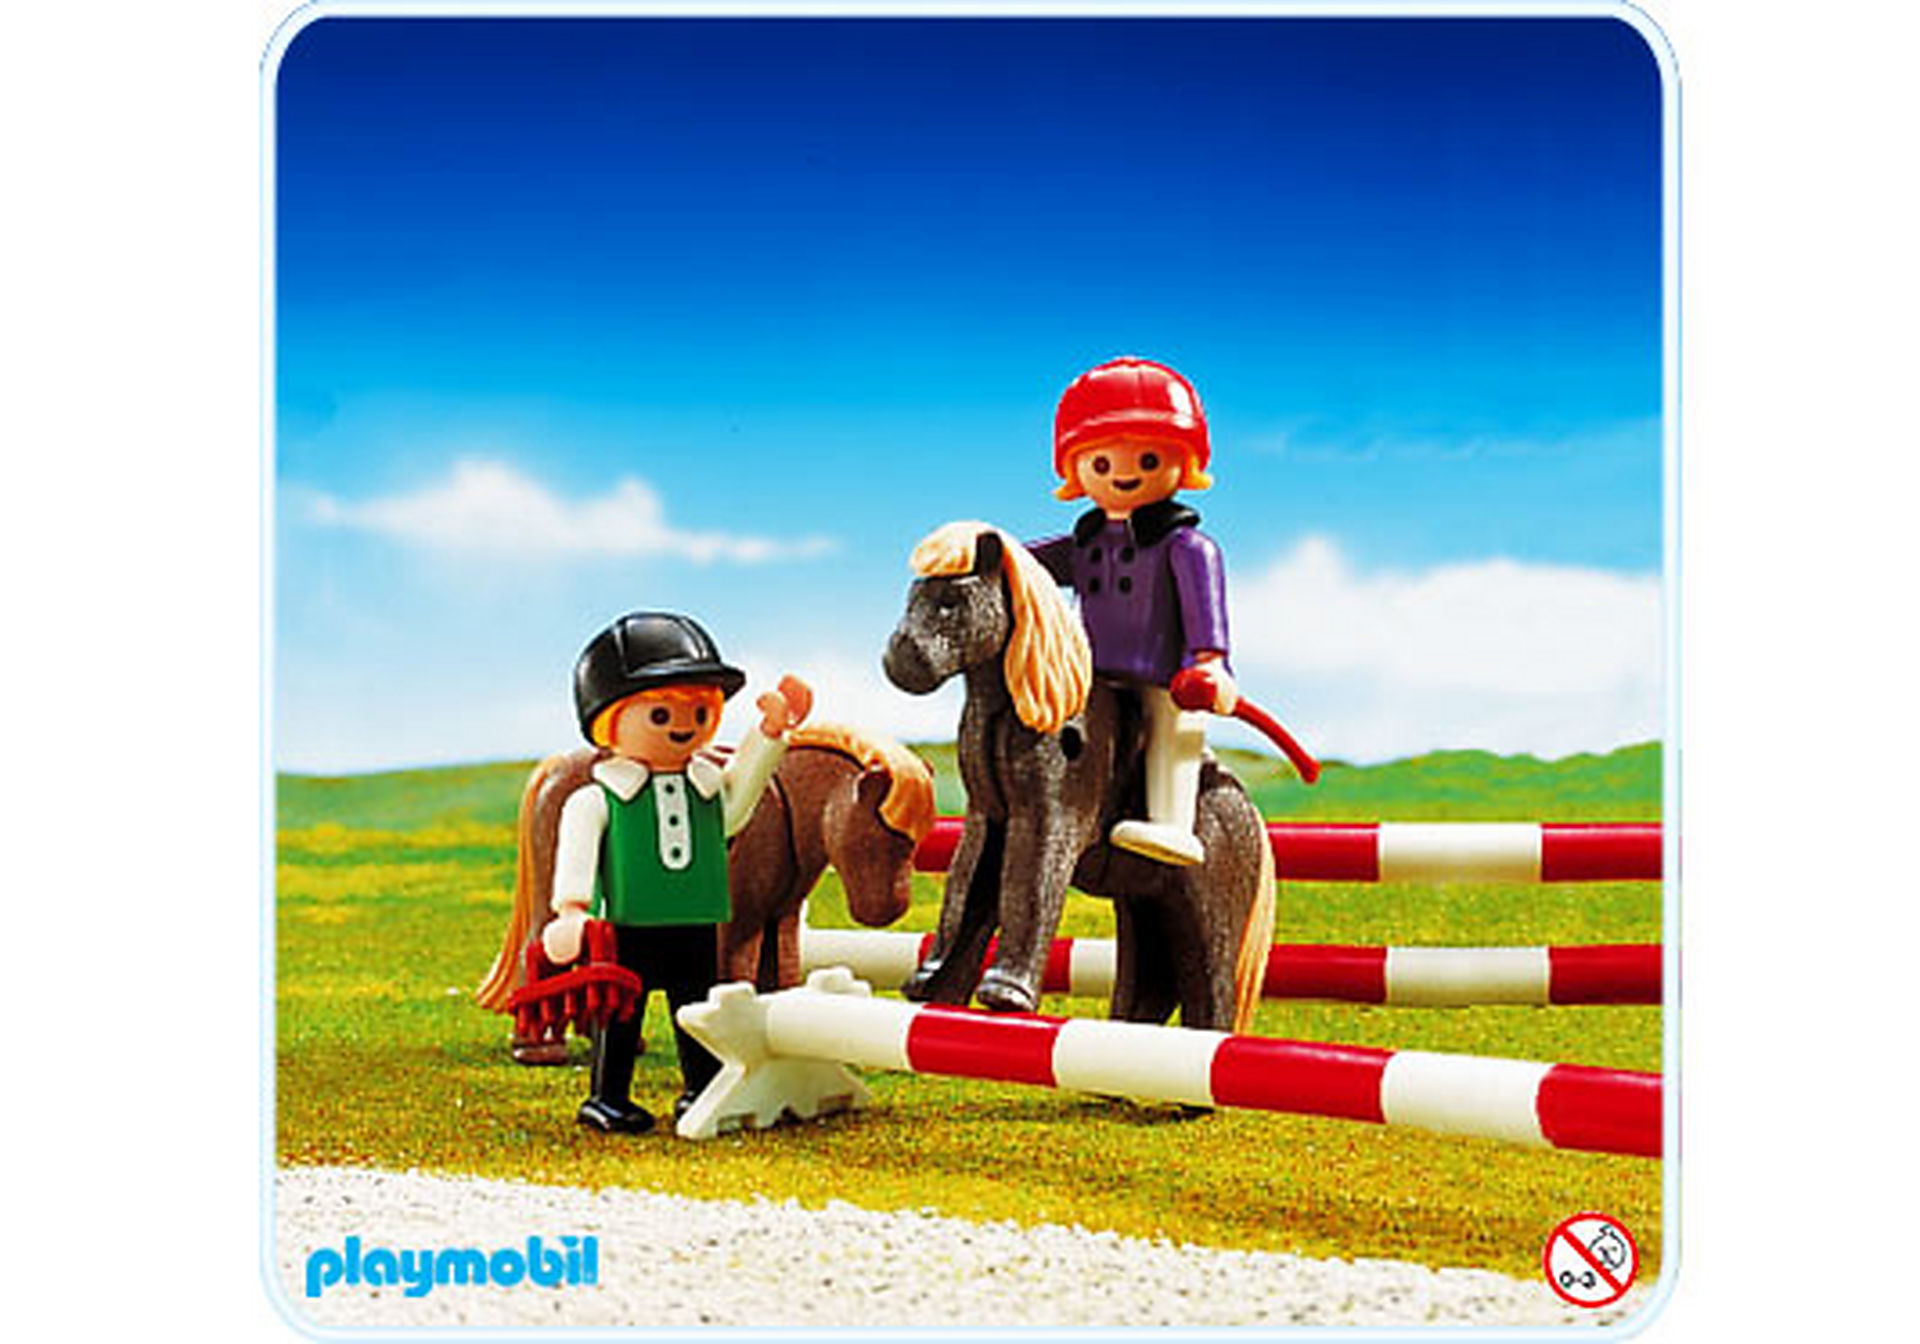 http://media.playmobil.com/i/playmobil/3714-A_product_detail/2 Kinder/2 Pony